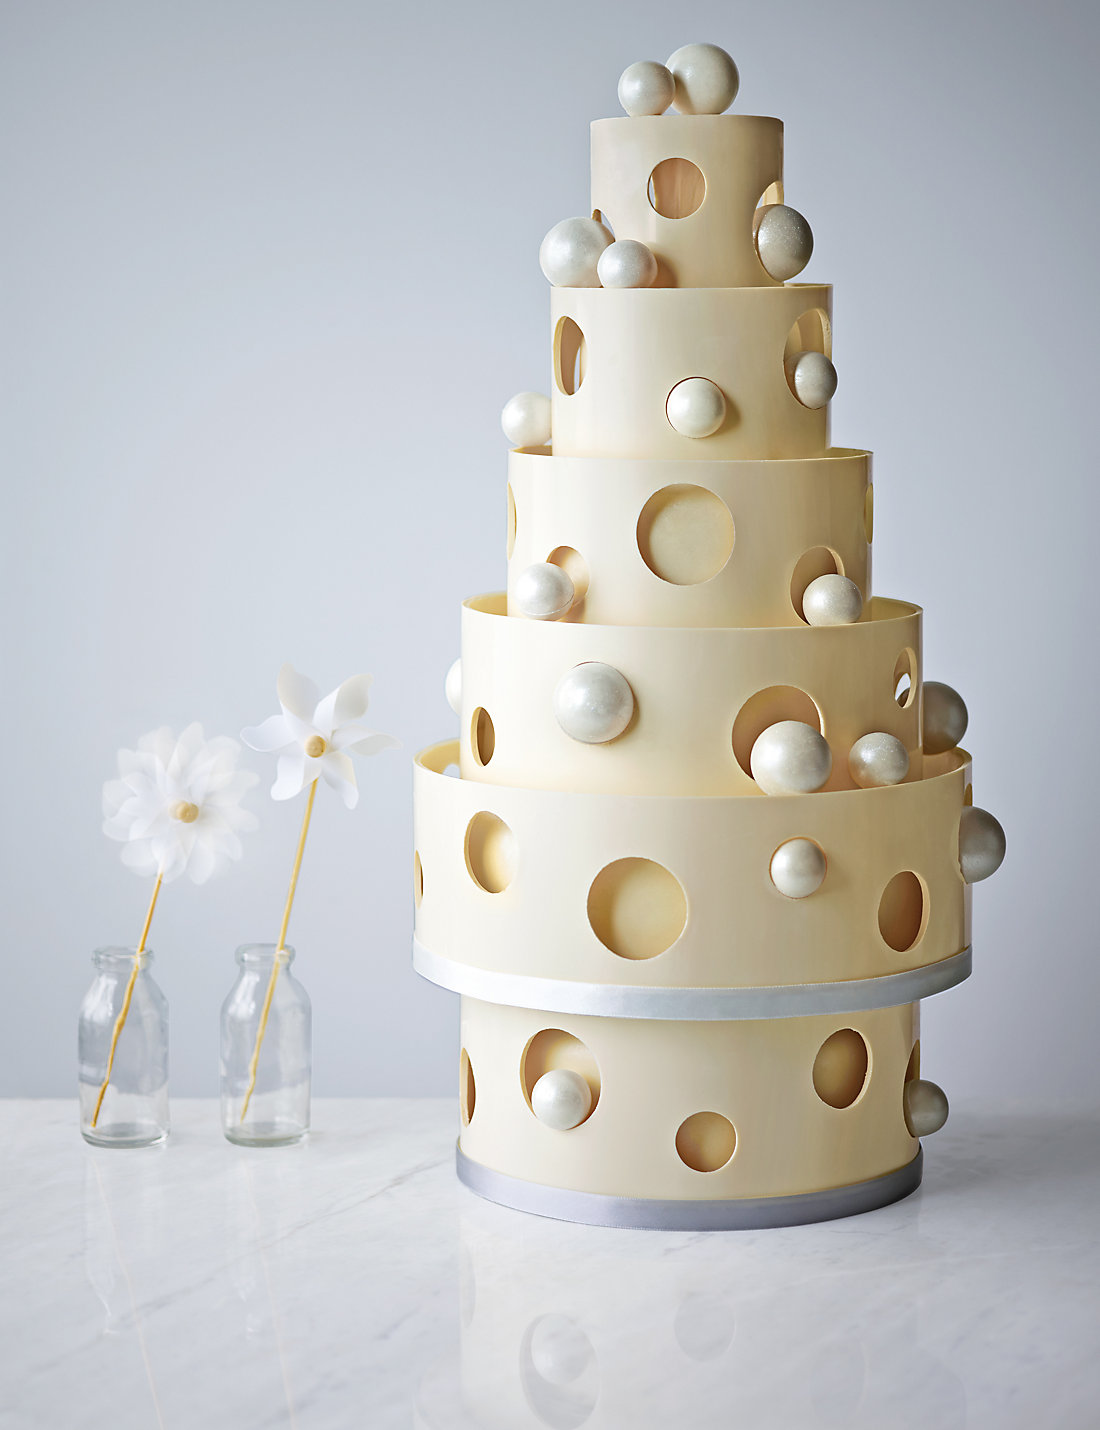 Fantastic Wedding Cake M&s Festooning - The Wedding Ideas ...